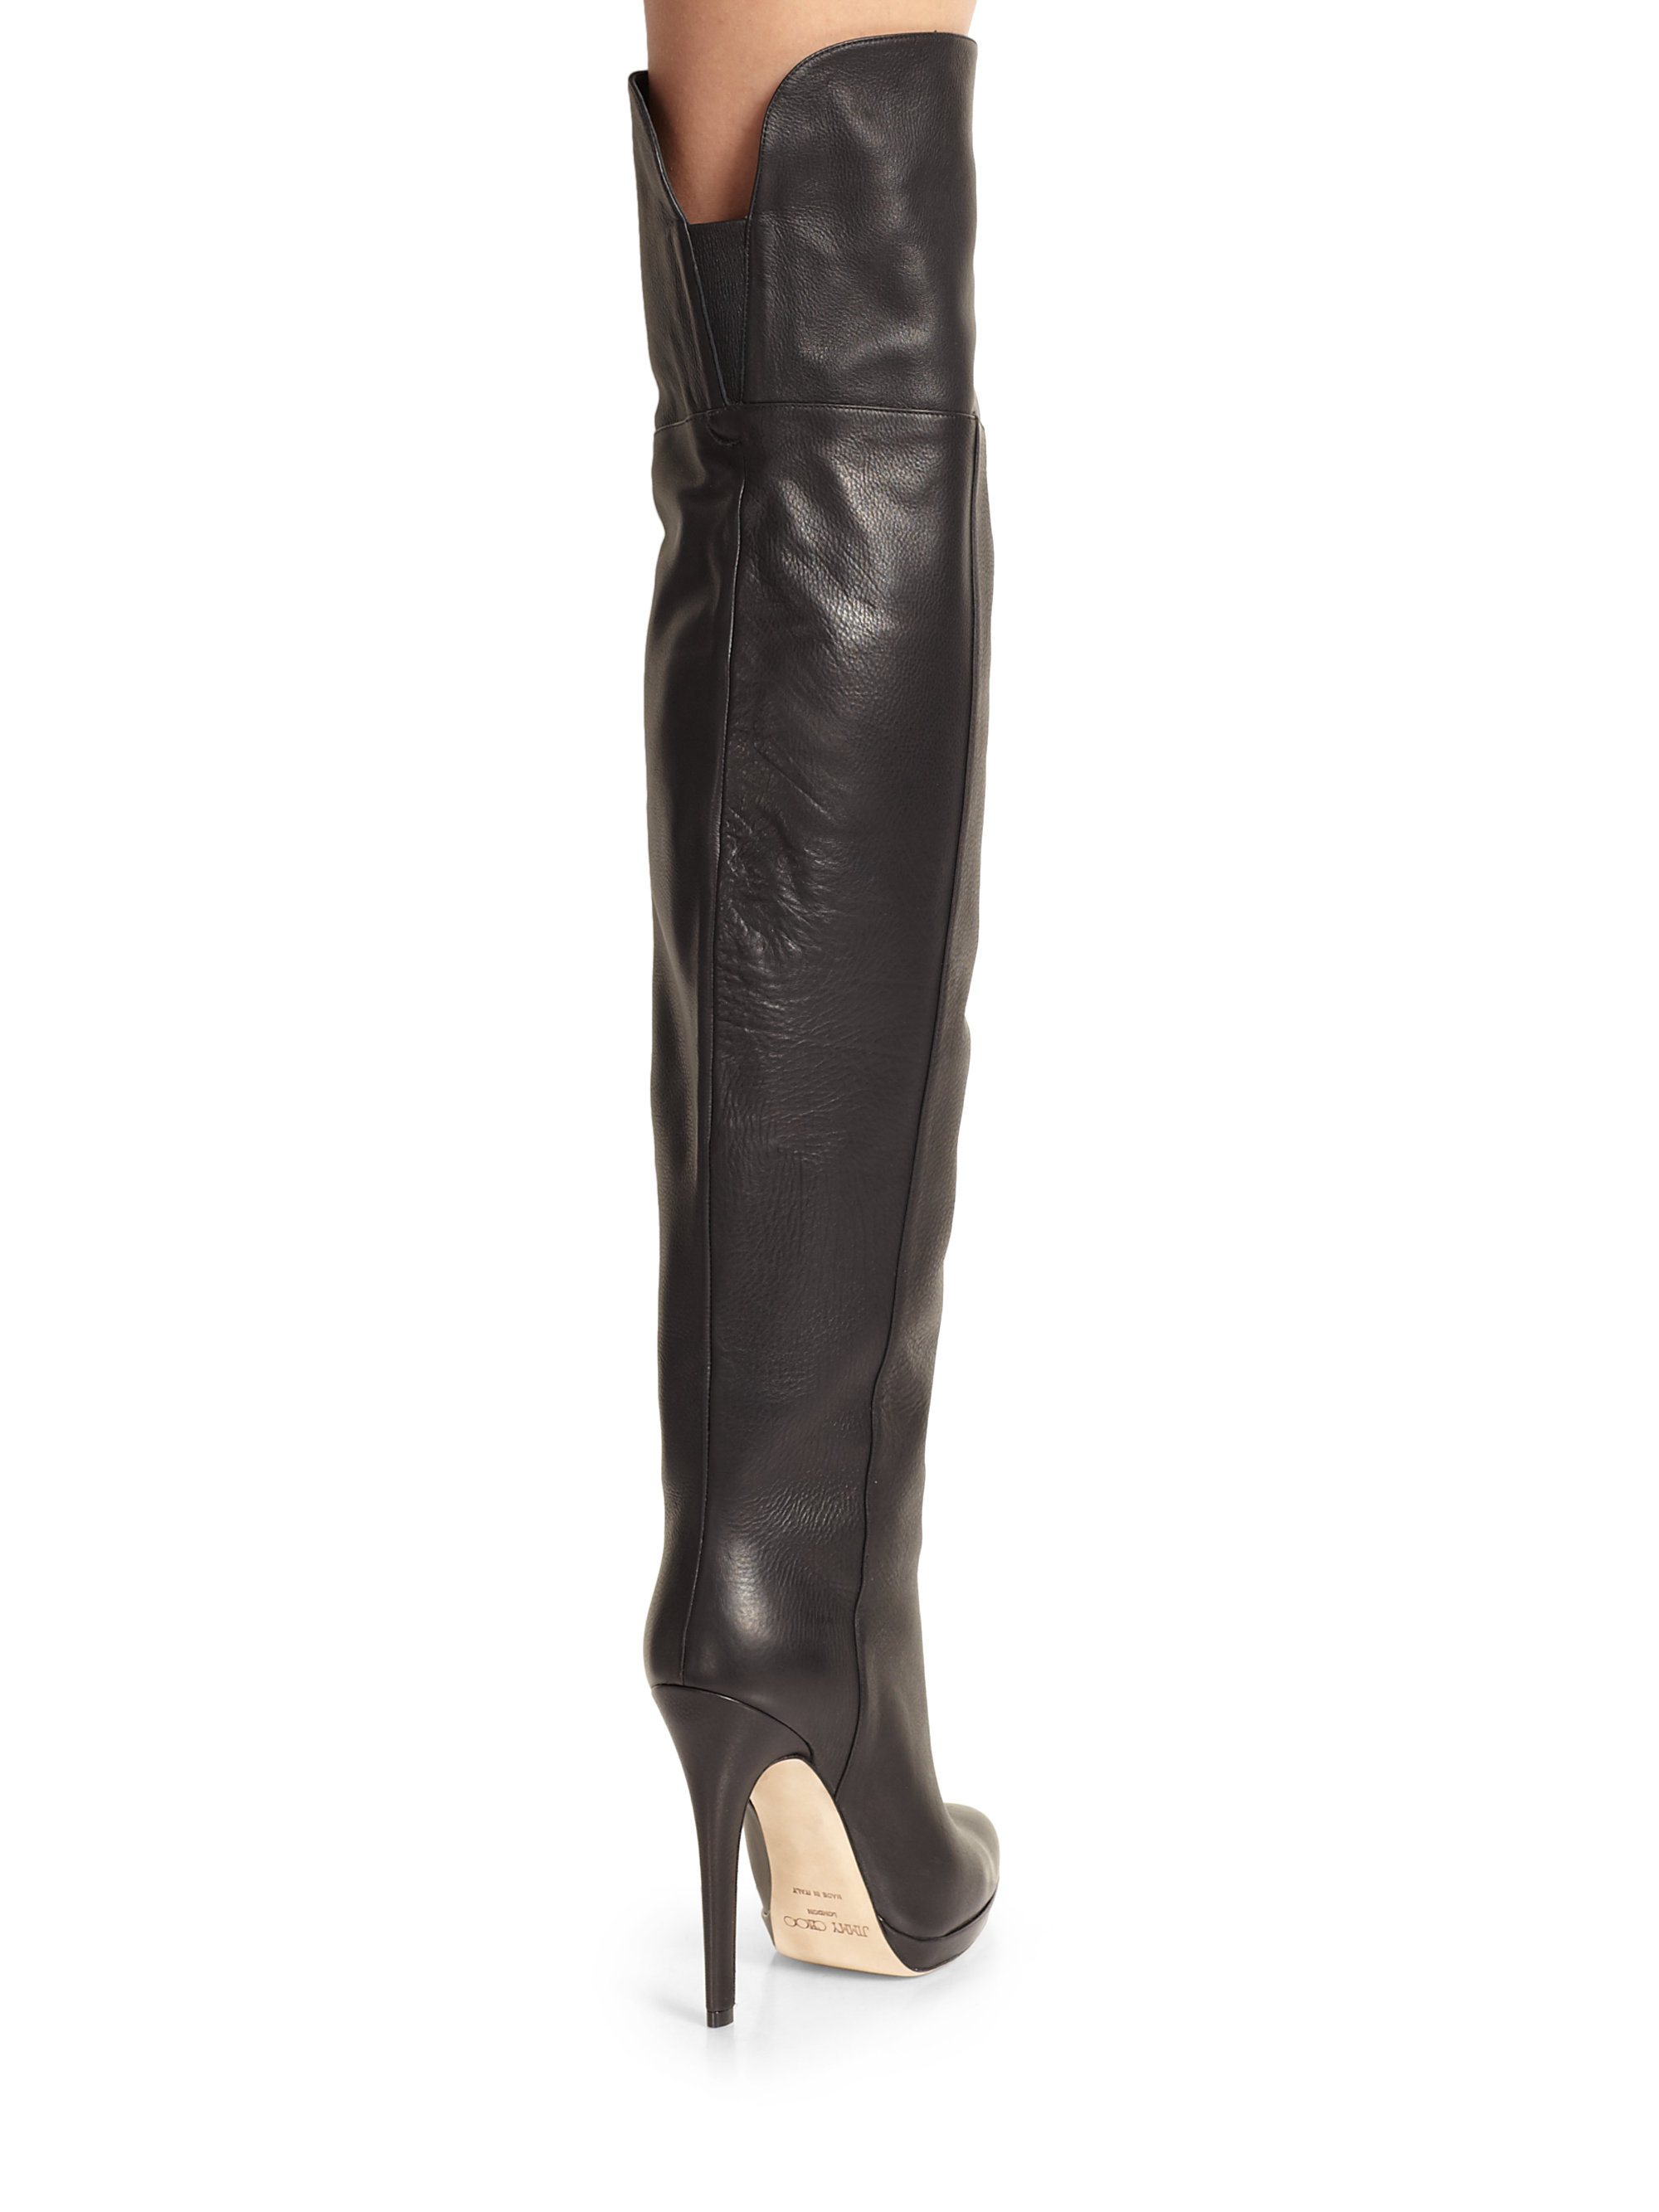 9f4d0bee7e7 Lyst - Jimmy Choo Giselle Leather Over-the-knee Boots in Black